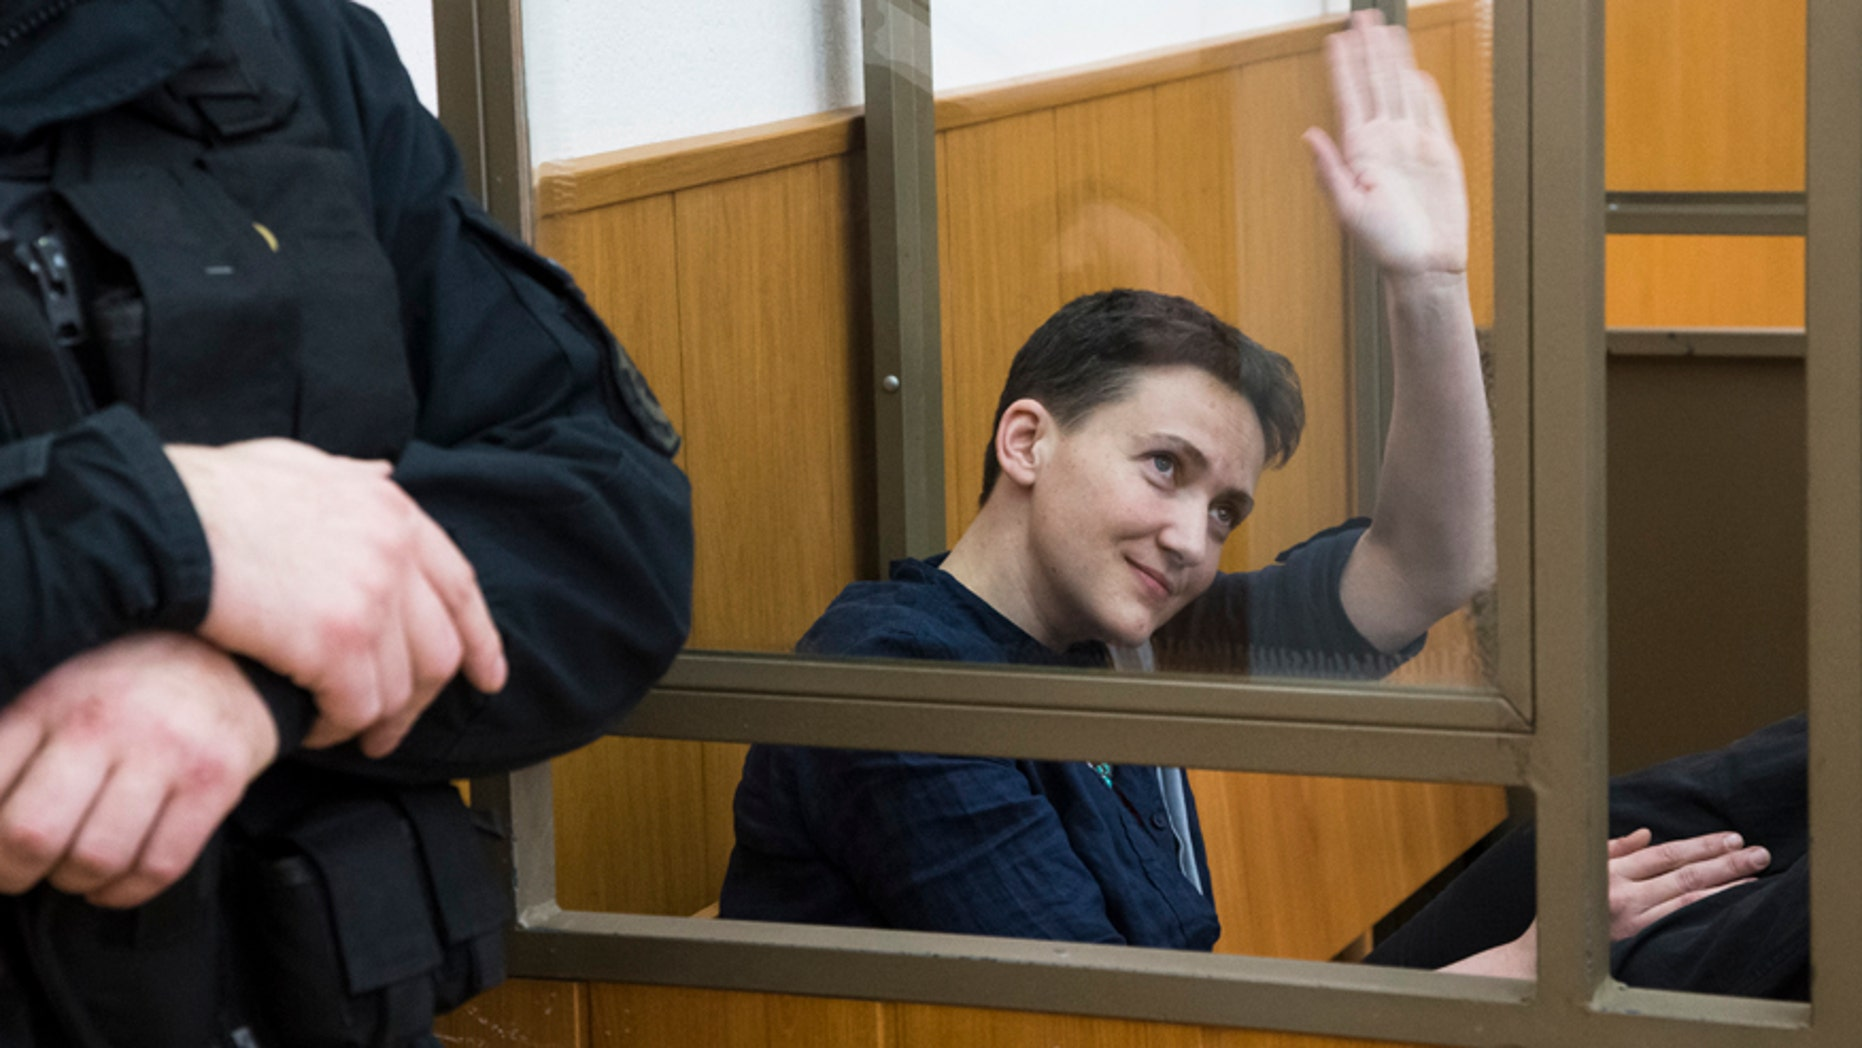 March 22, 2016: Ukrainian pilot Nadezhda Savchenko waves to journalists from a glass cage inside court, in the town of Donetsk, Rostov-on-Don region, Russia.